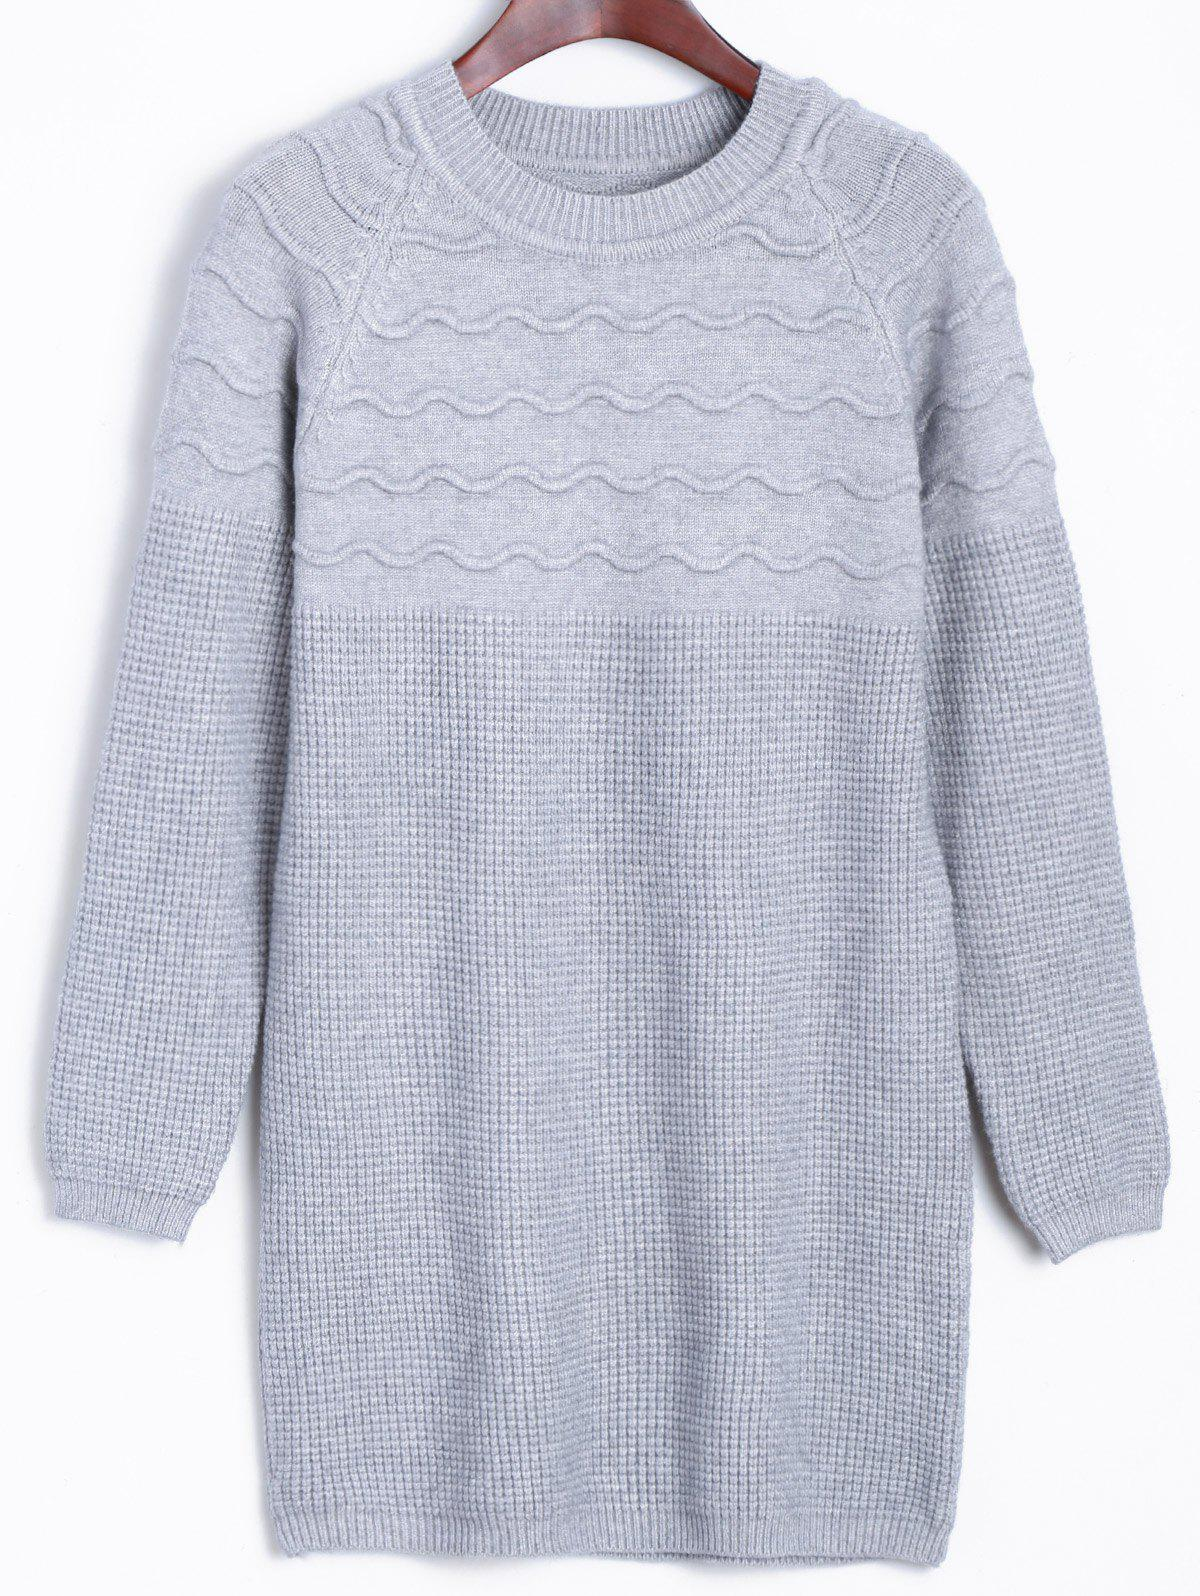 Raglan Longline Sweater with Wavy Knit - GRAY ONE SIZE